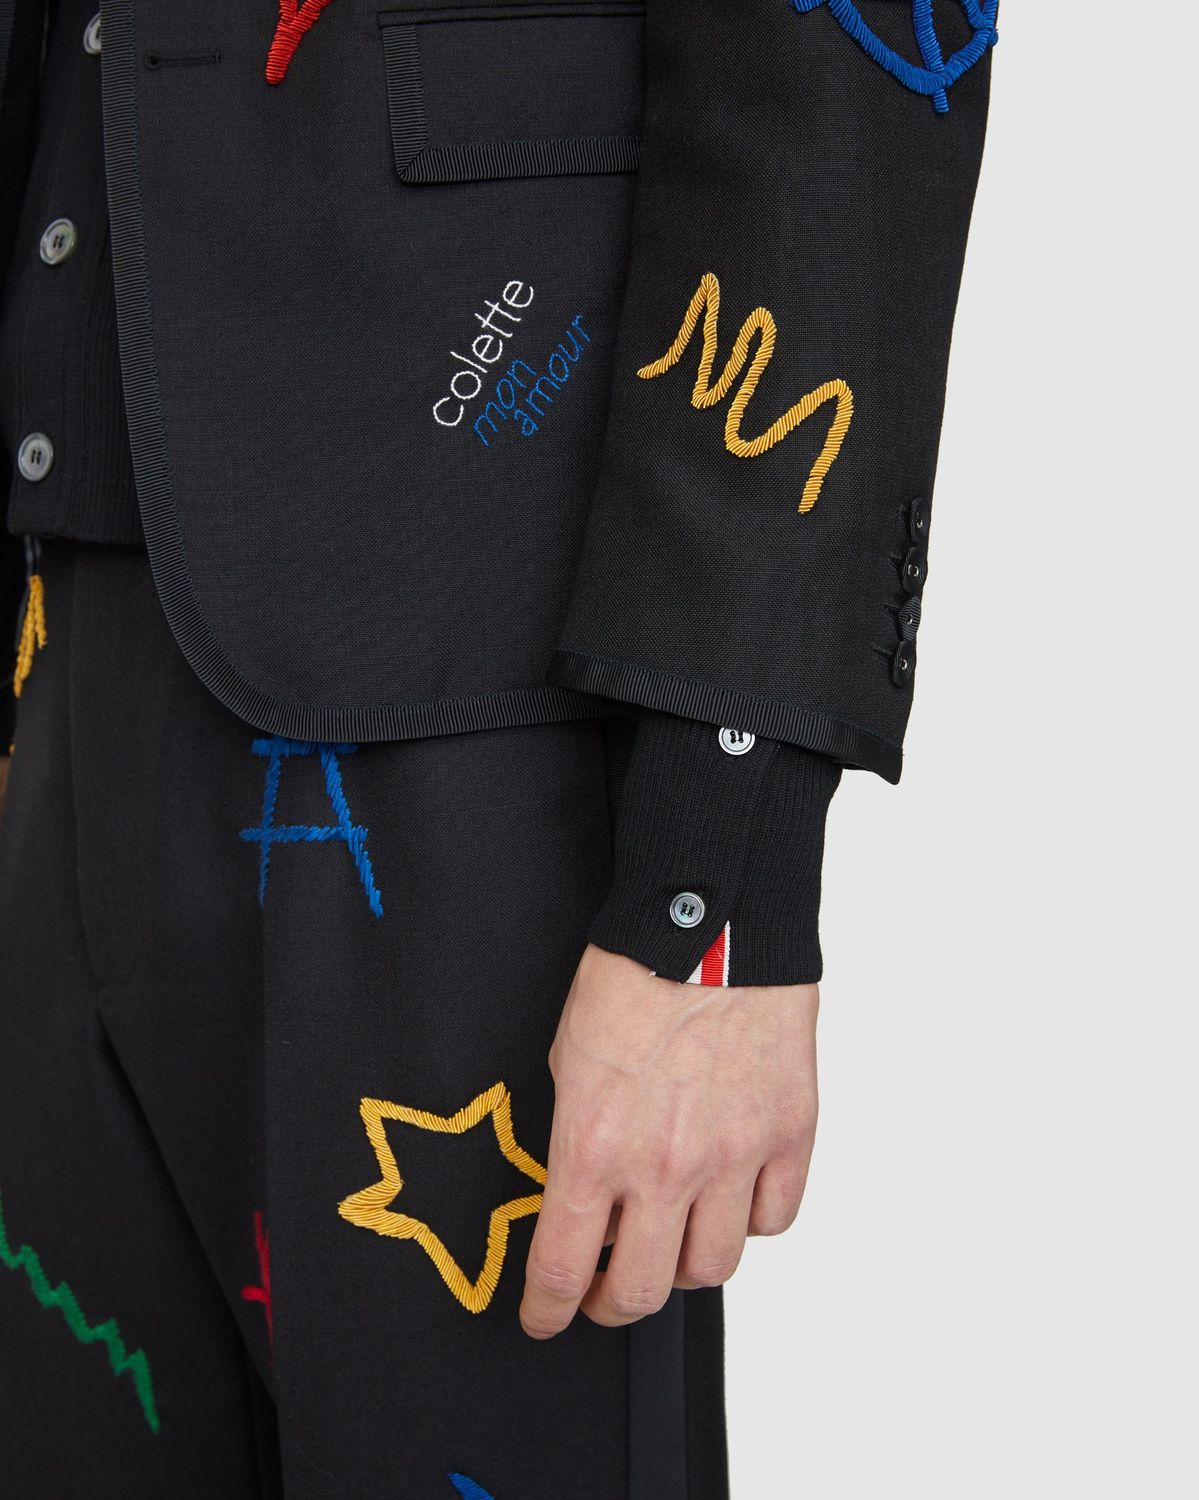 Colette Mon Amour x Thom Browne — Black Embroidered Tux Suit - Image 11